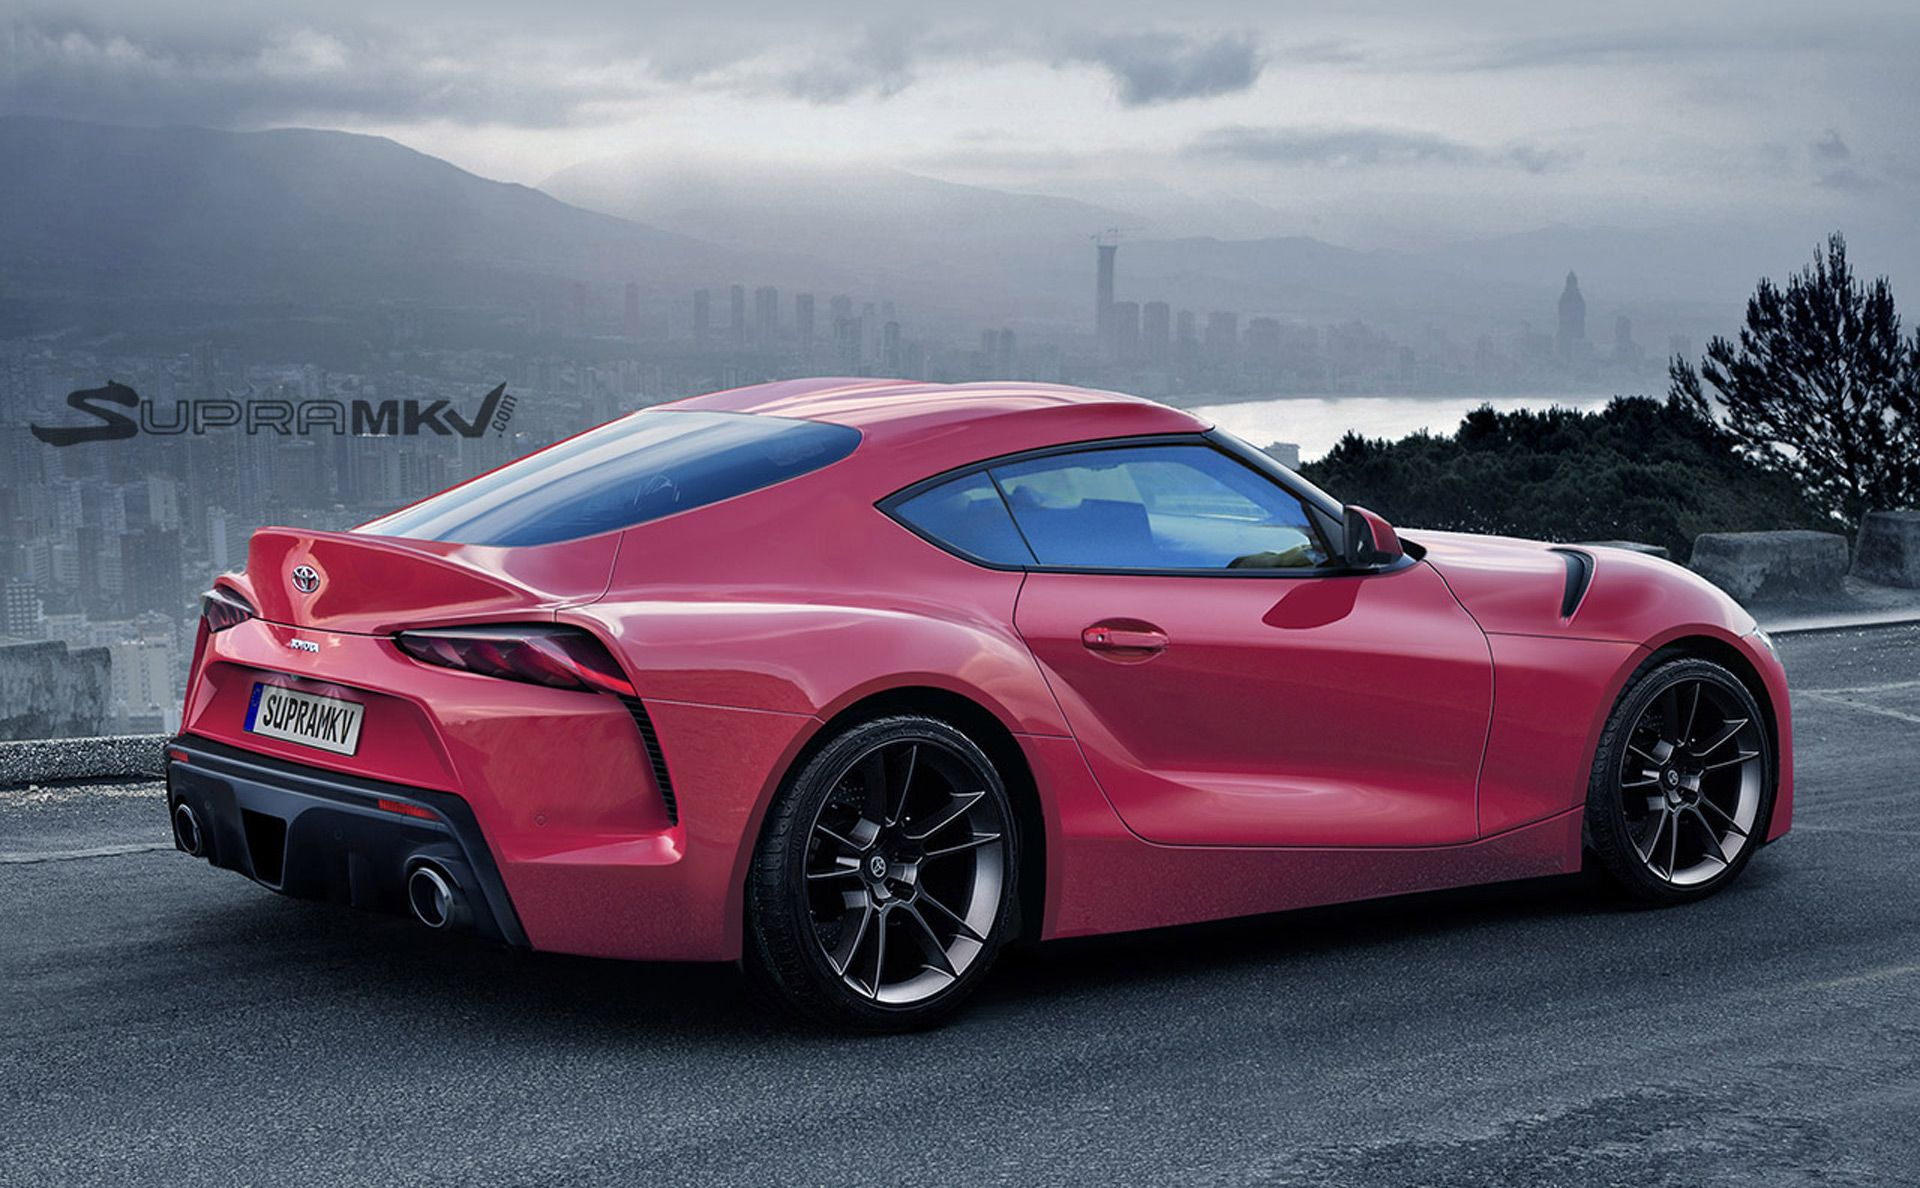 new toyota supra and bmw z4 to offer unique driving characteristics [ 1920 x 1188 Pixel ]